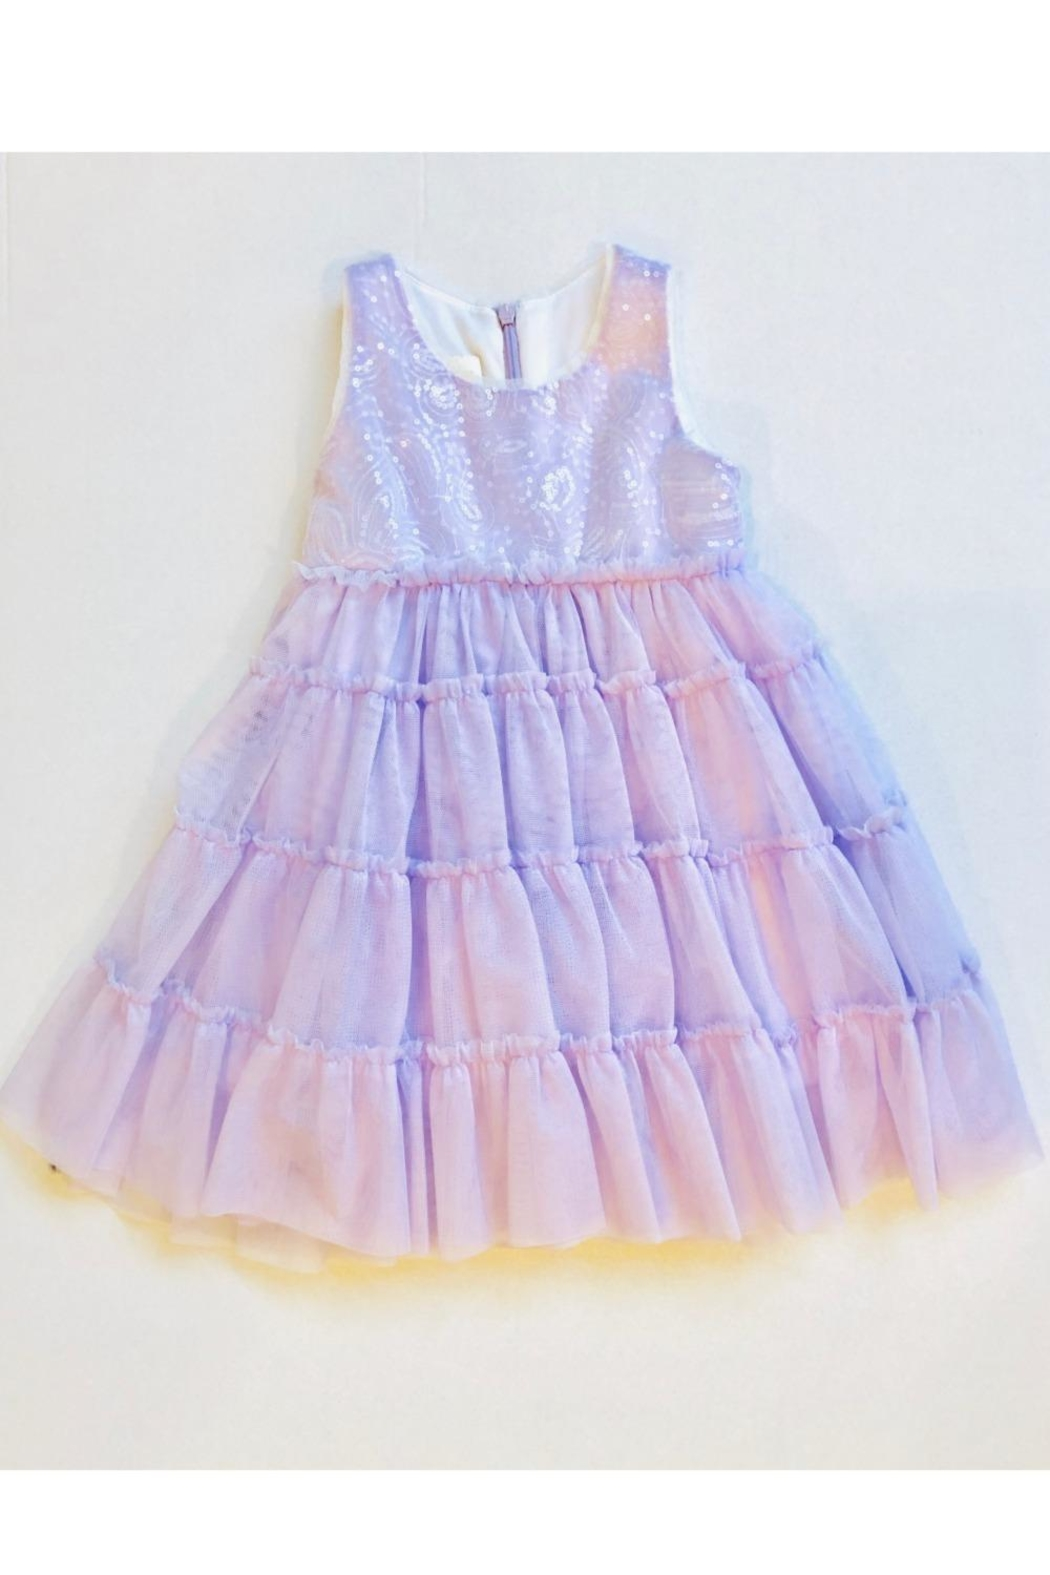 Isobella & Chloe Lavender Ruffle Dress - Front Cropped Image